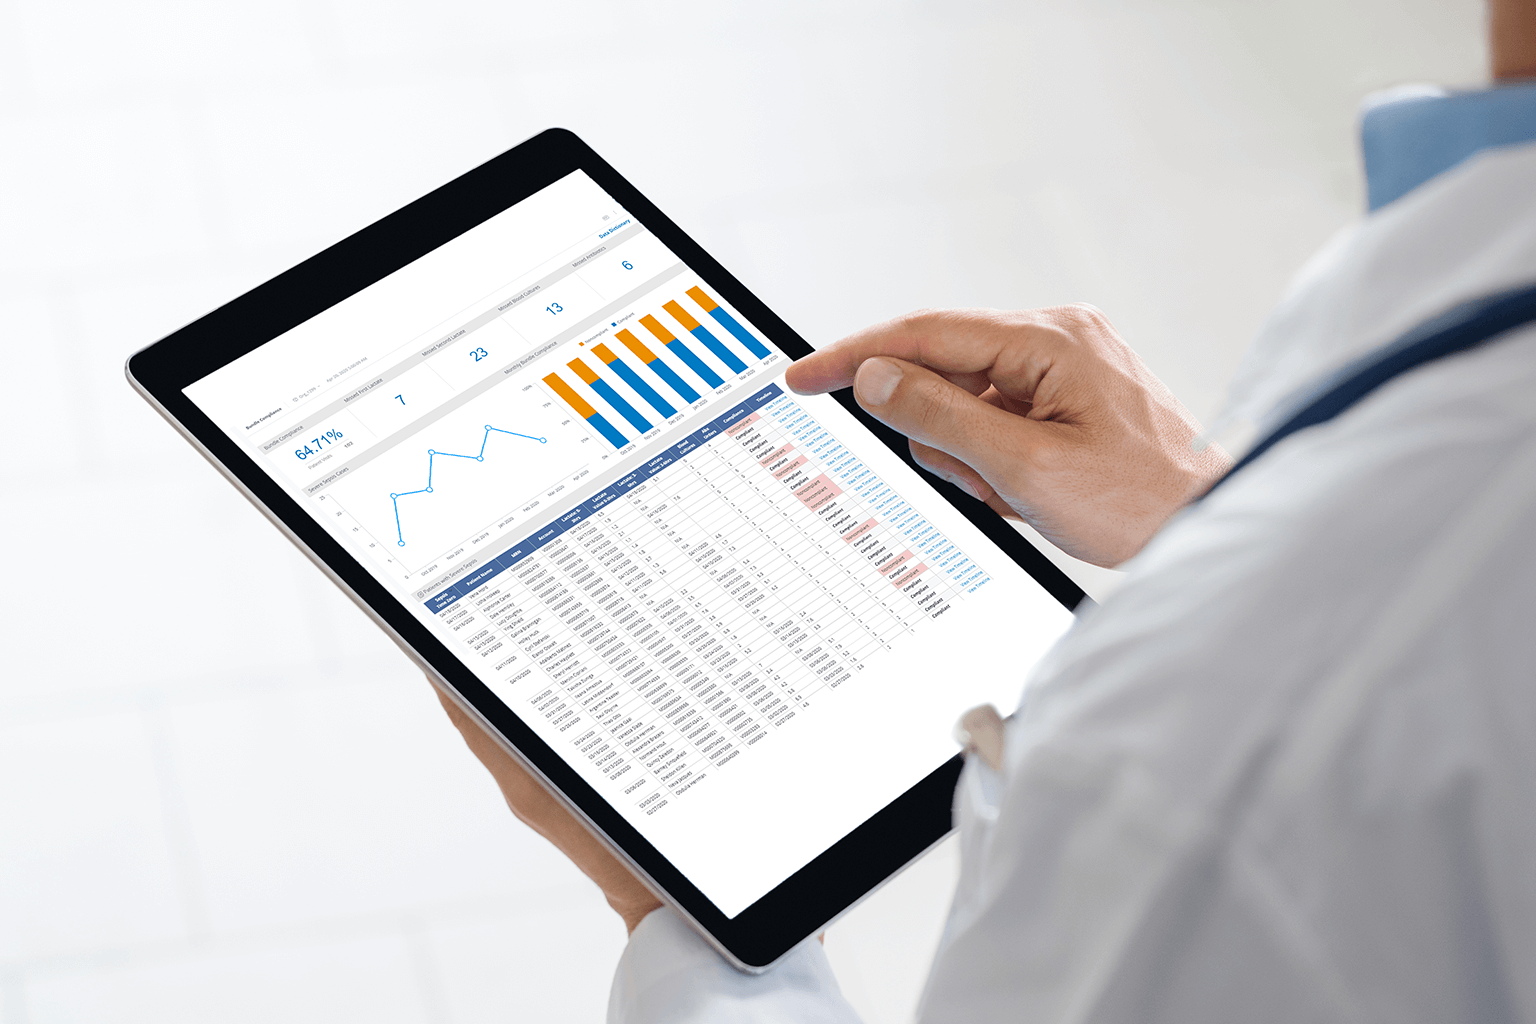 New Wolters Kluwer payer tools boost health data analytics and member satisfaction